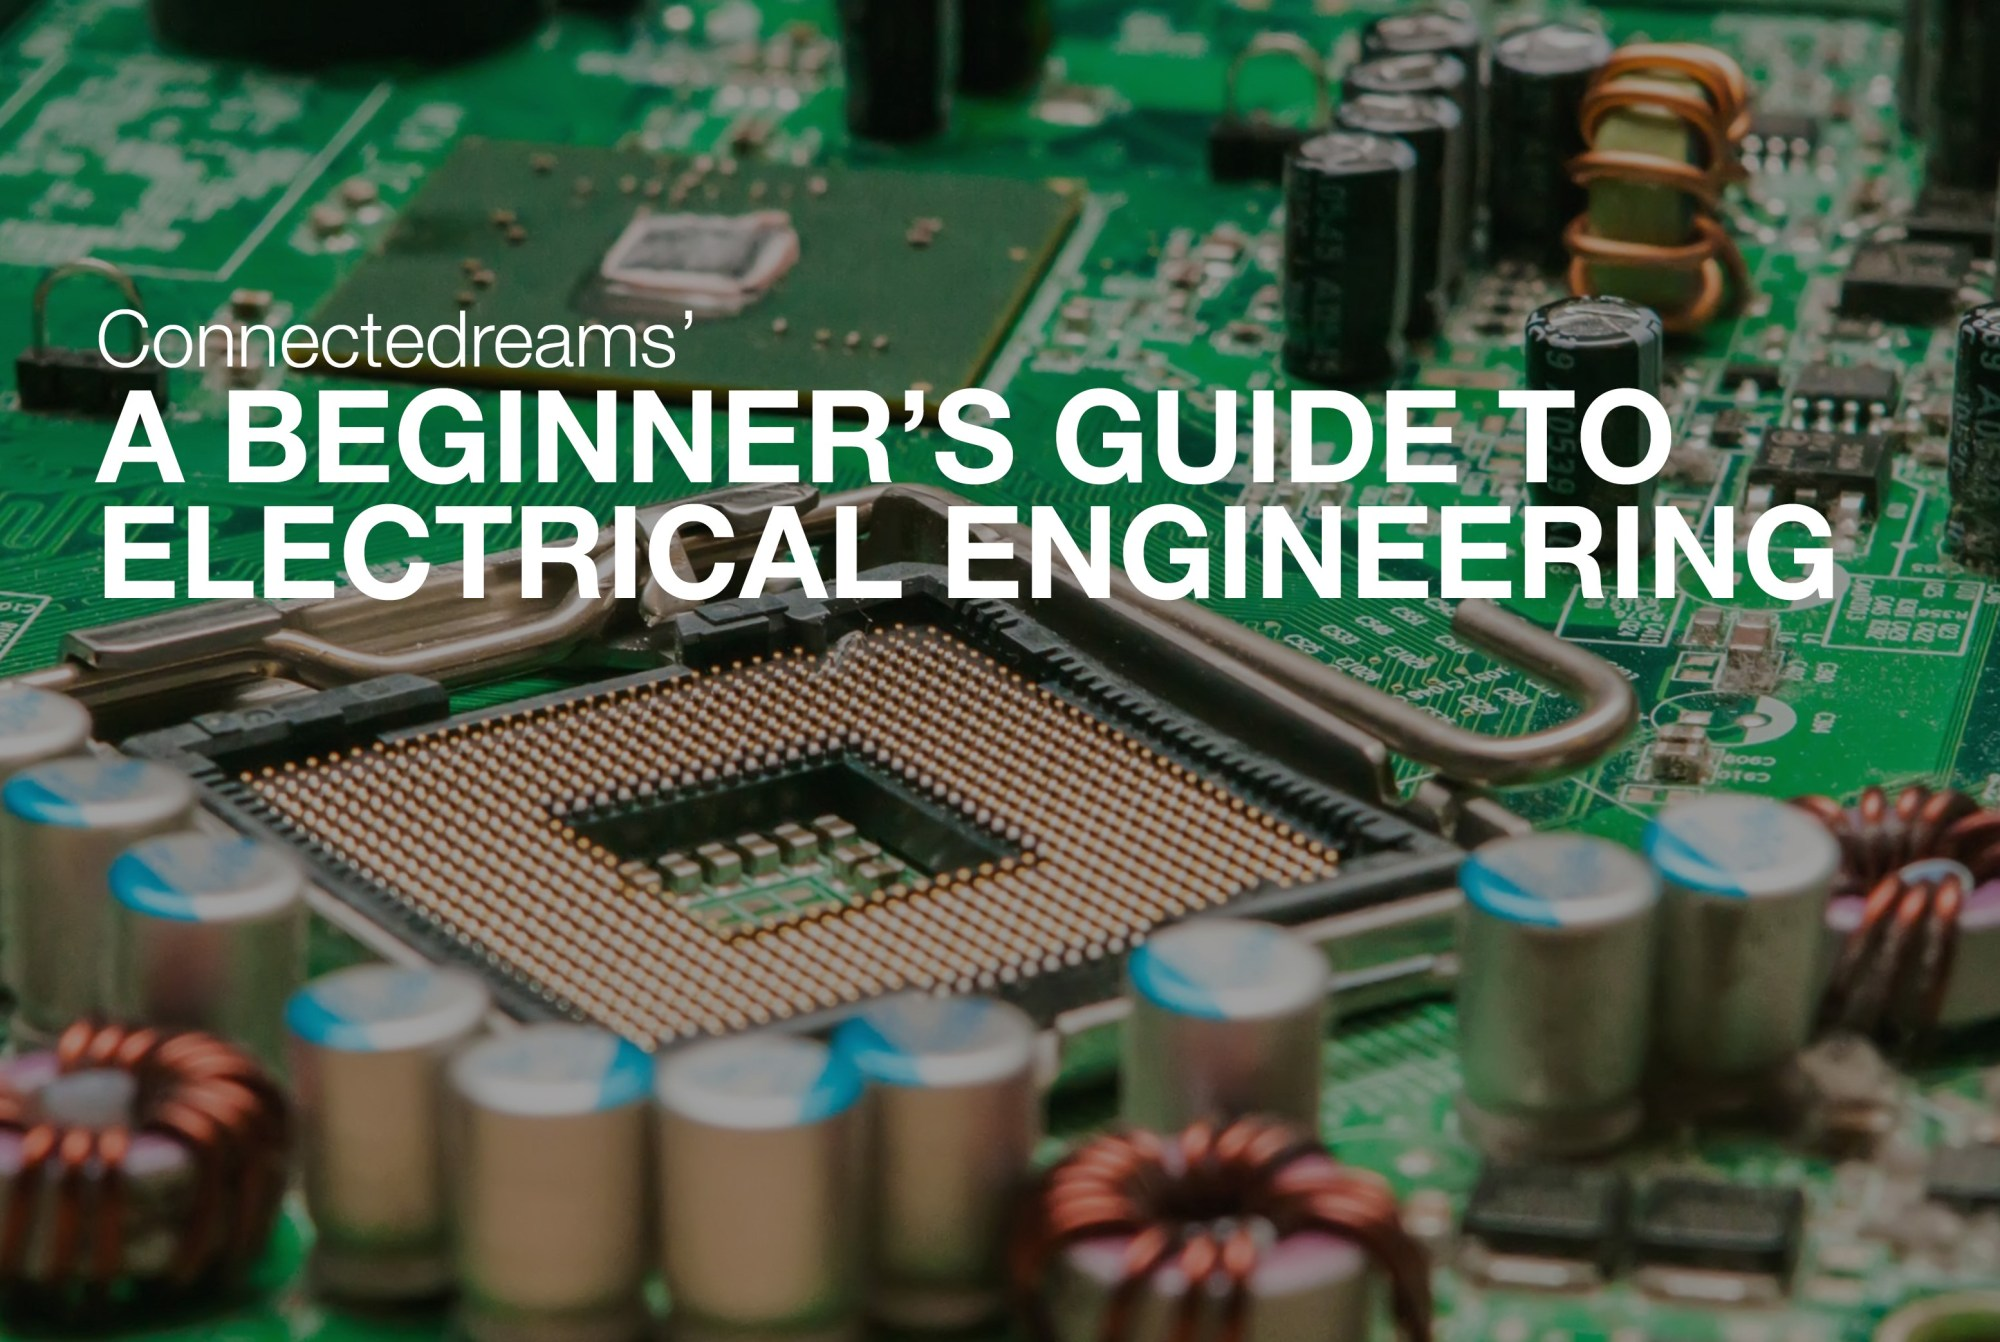 hight resolution of a beginner s guide to electrical engineering connectedreams blog medium